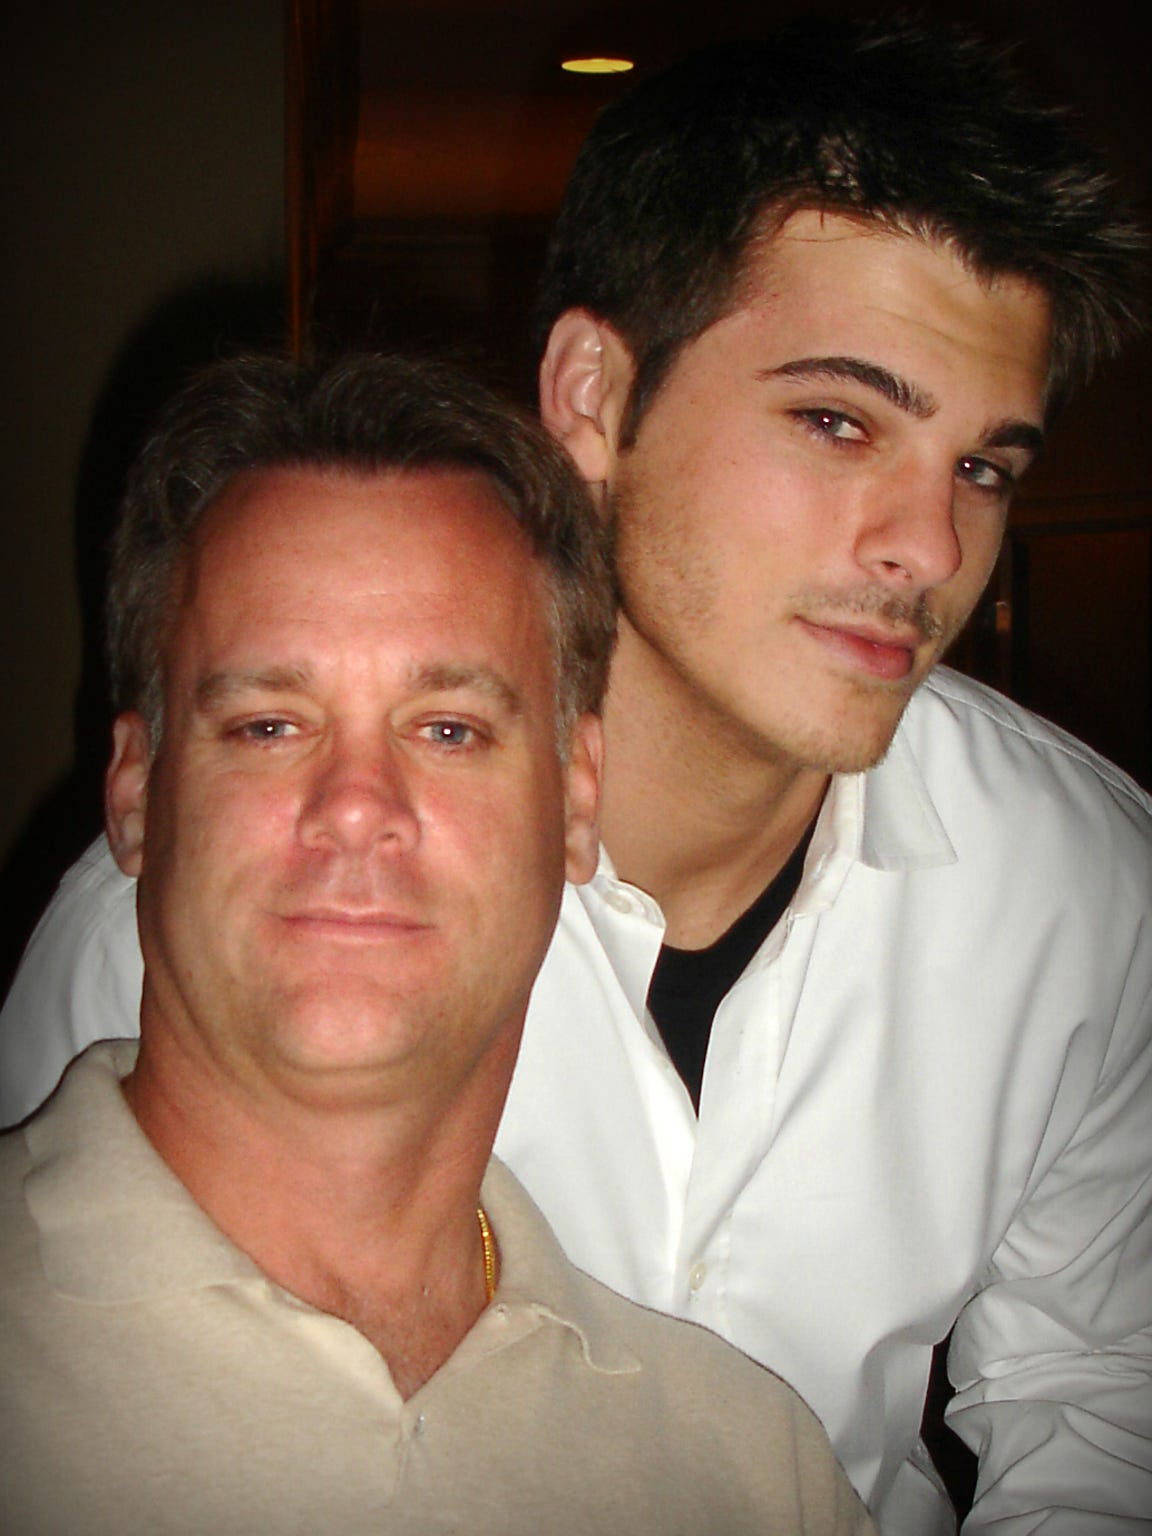 Jay Poston with his son, Ryan Poston.